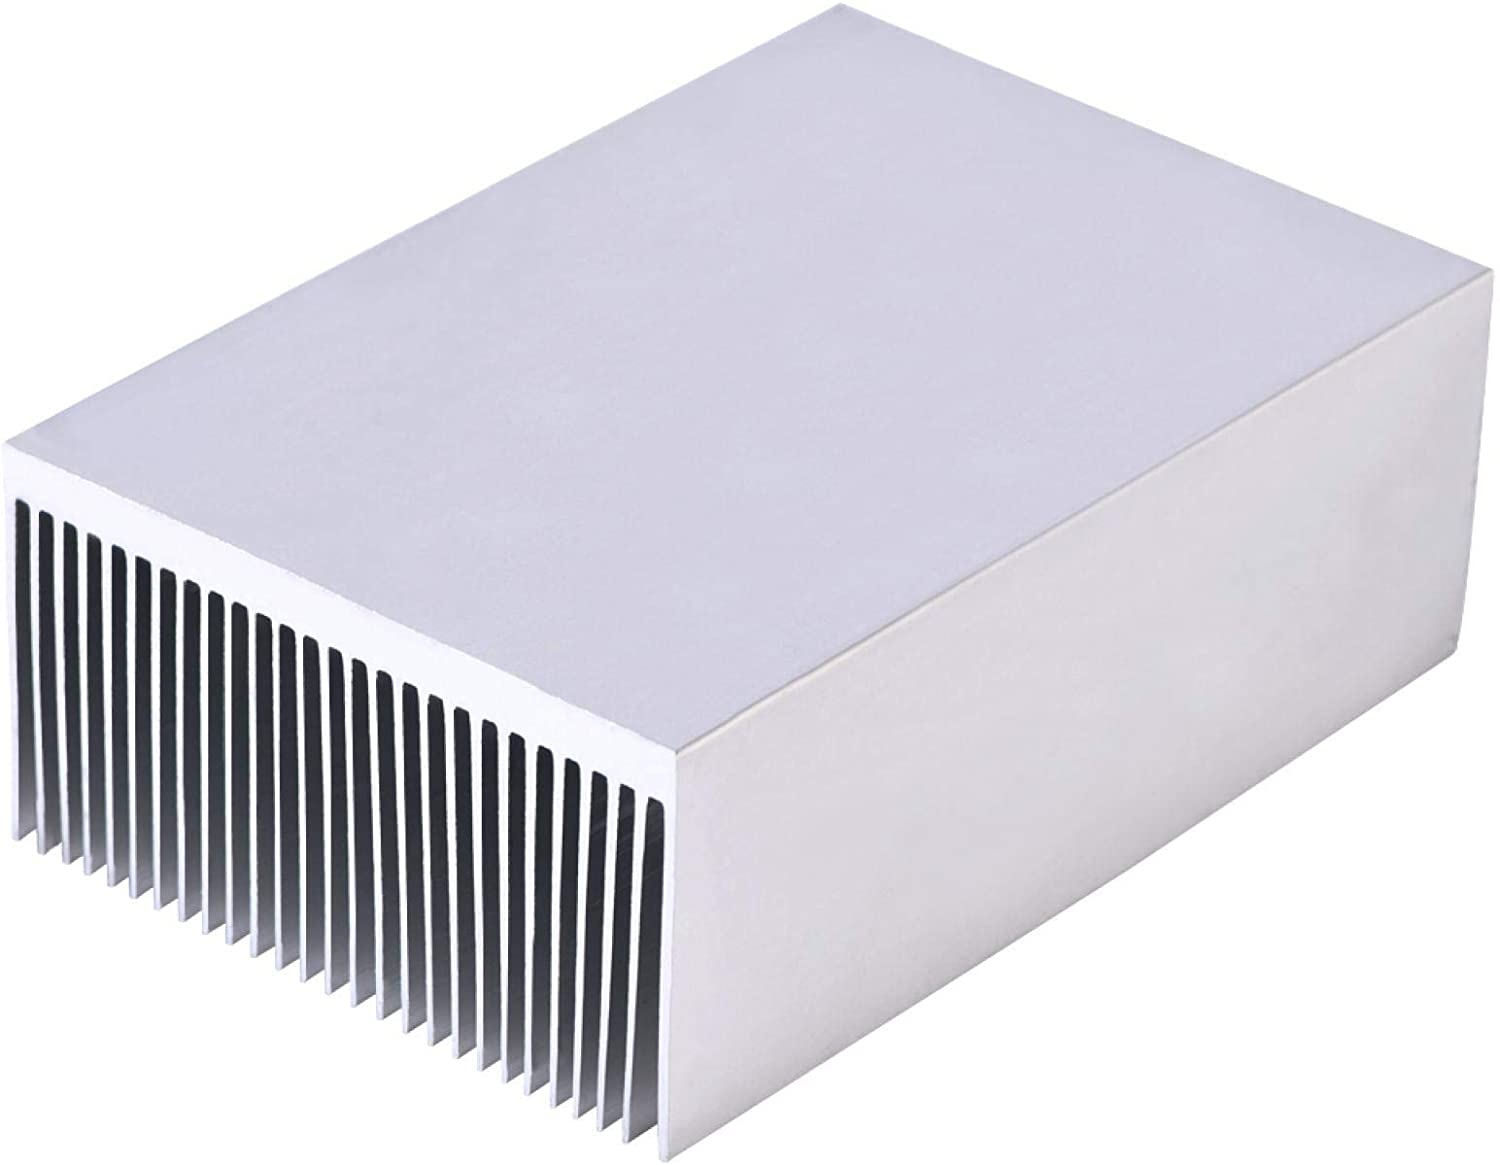 Led Light Devices for Power IC Power Electric Device Computer bizofft Good Thermal Conductivity Light Weight Heatsink Efficient Cooler